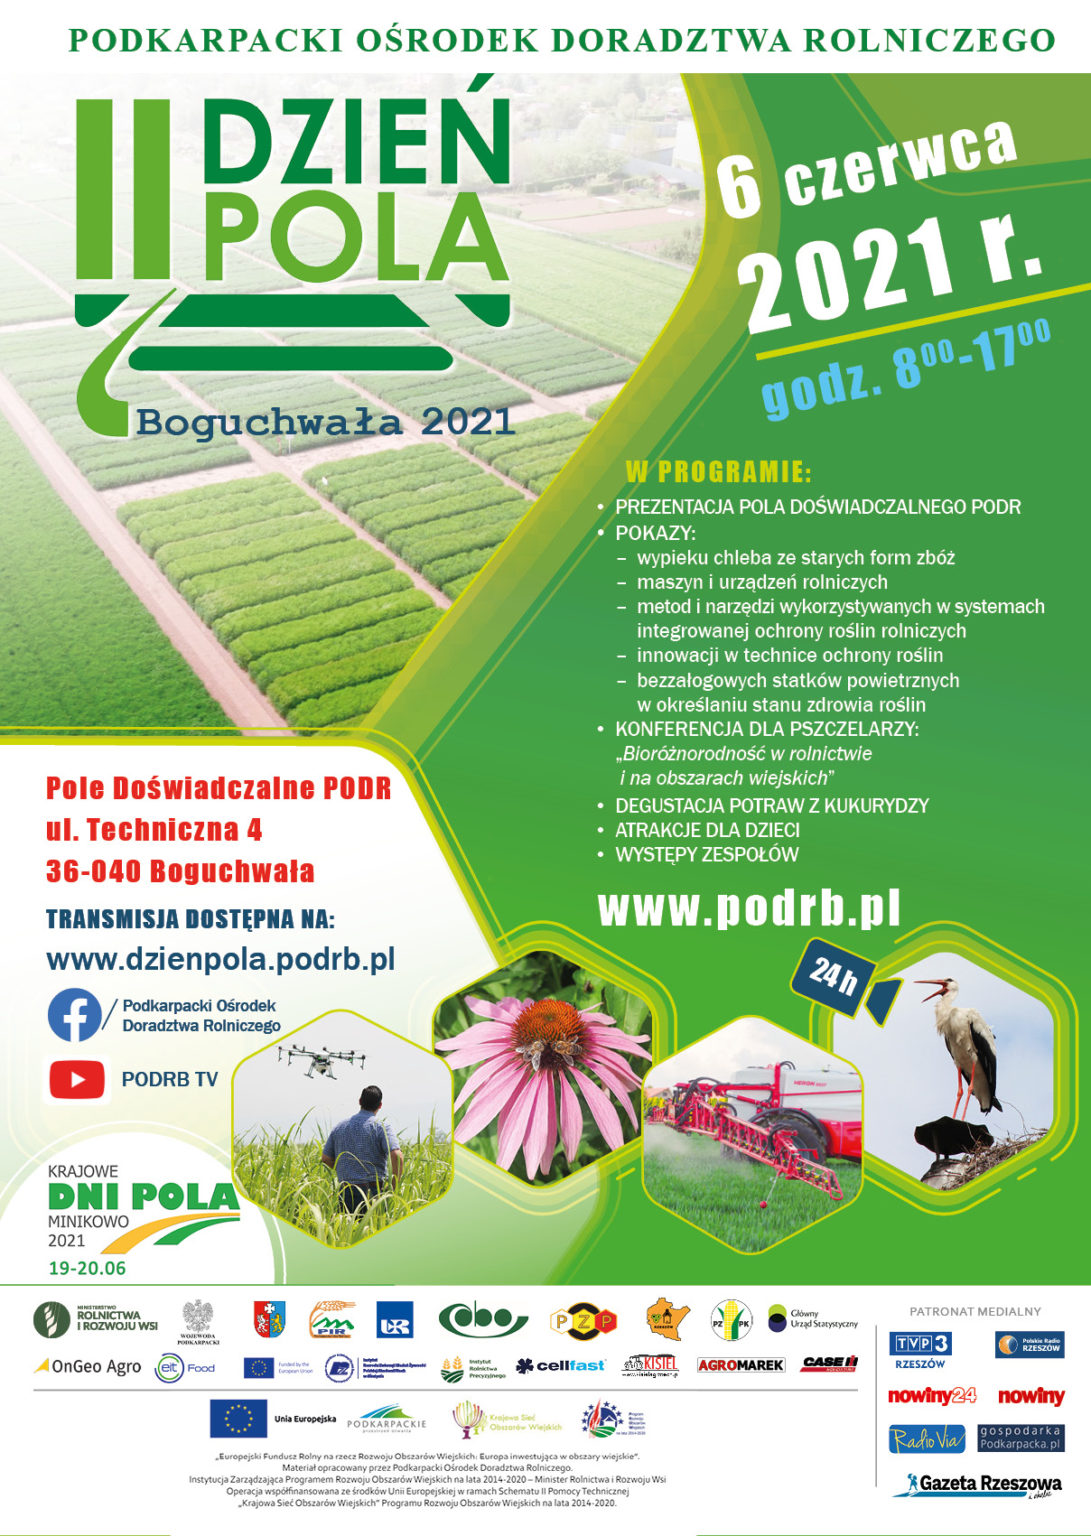 The II Field Day in Poland